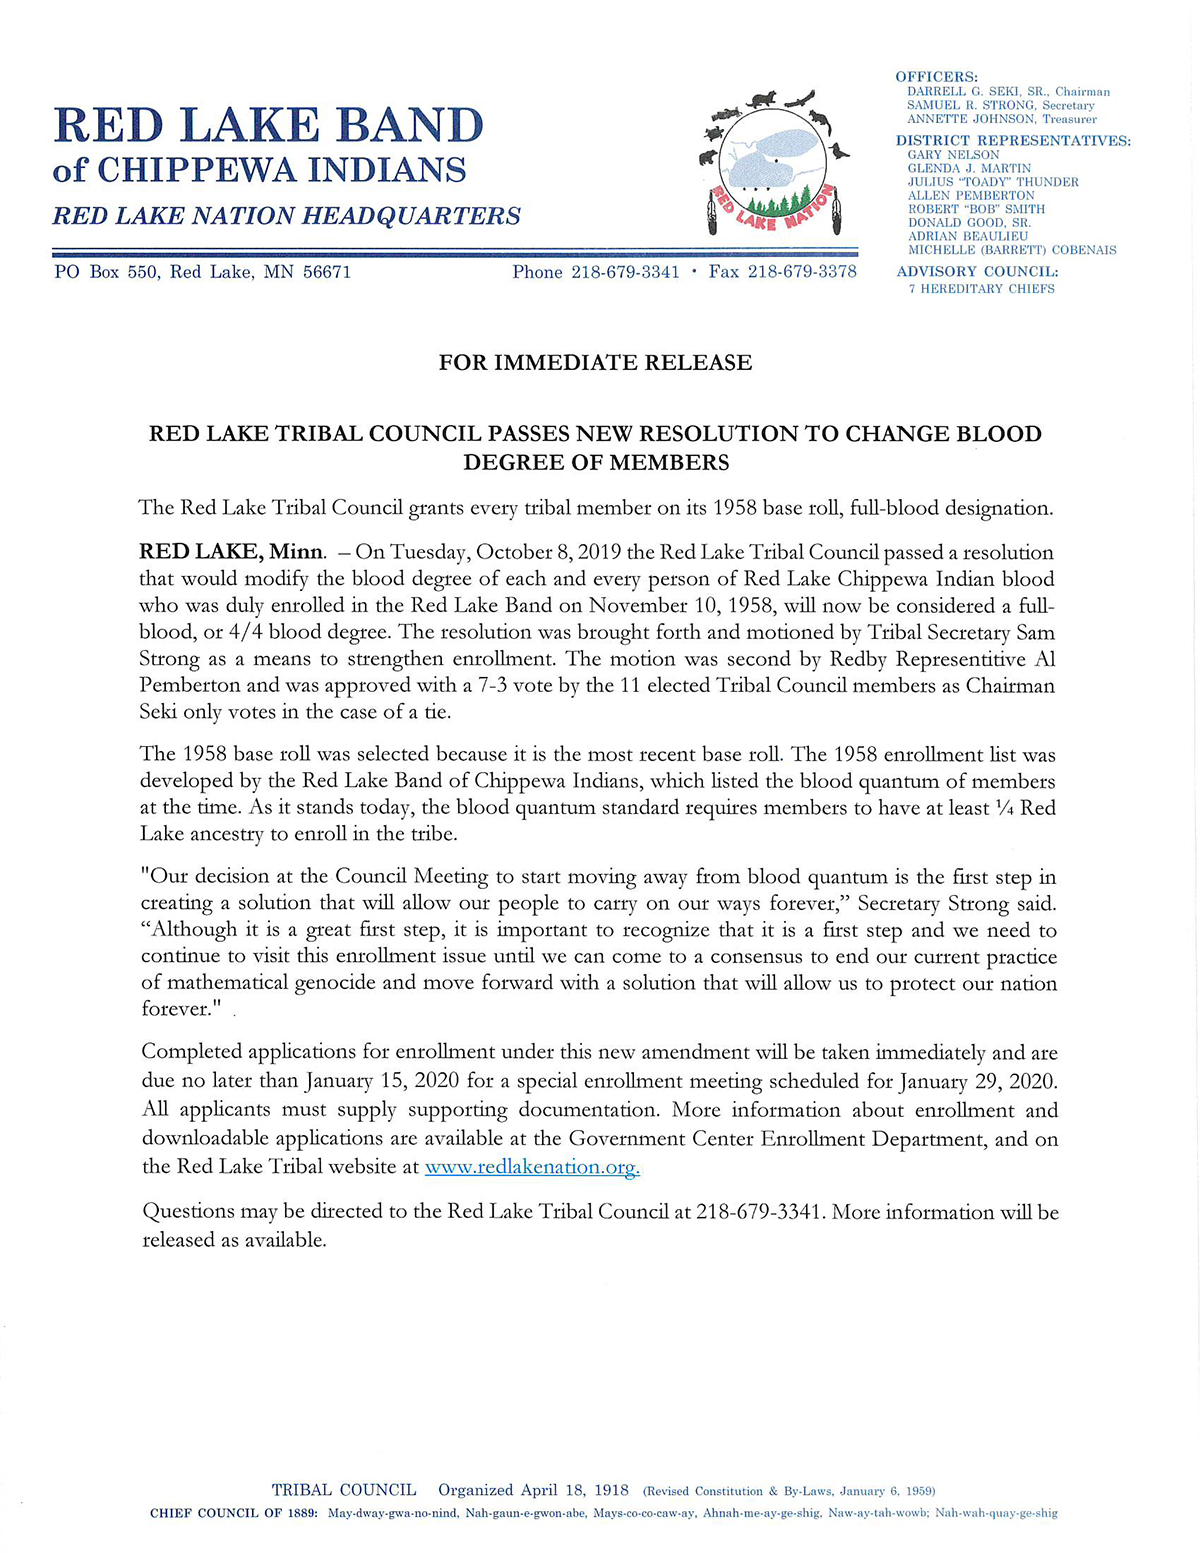 Red Lake Tribal Council Passes New Resolution to Change Blood Degree of Members